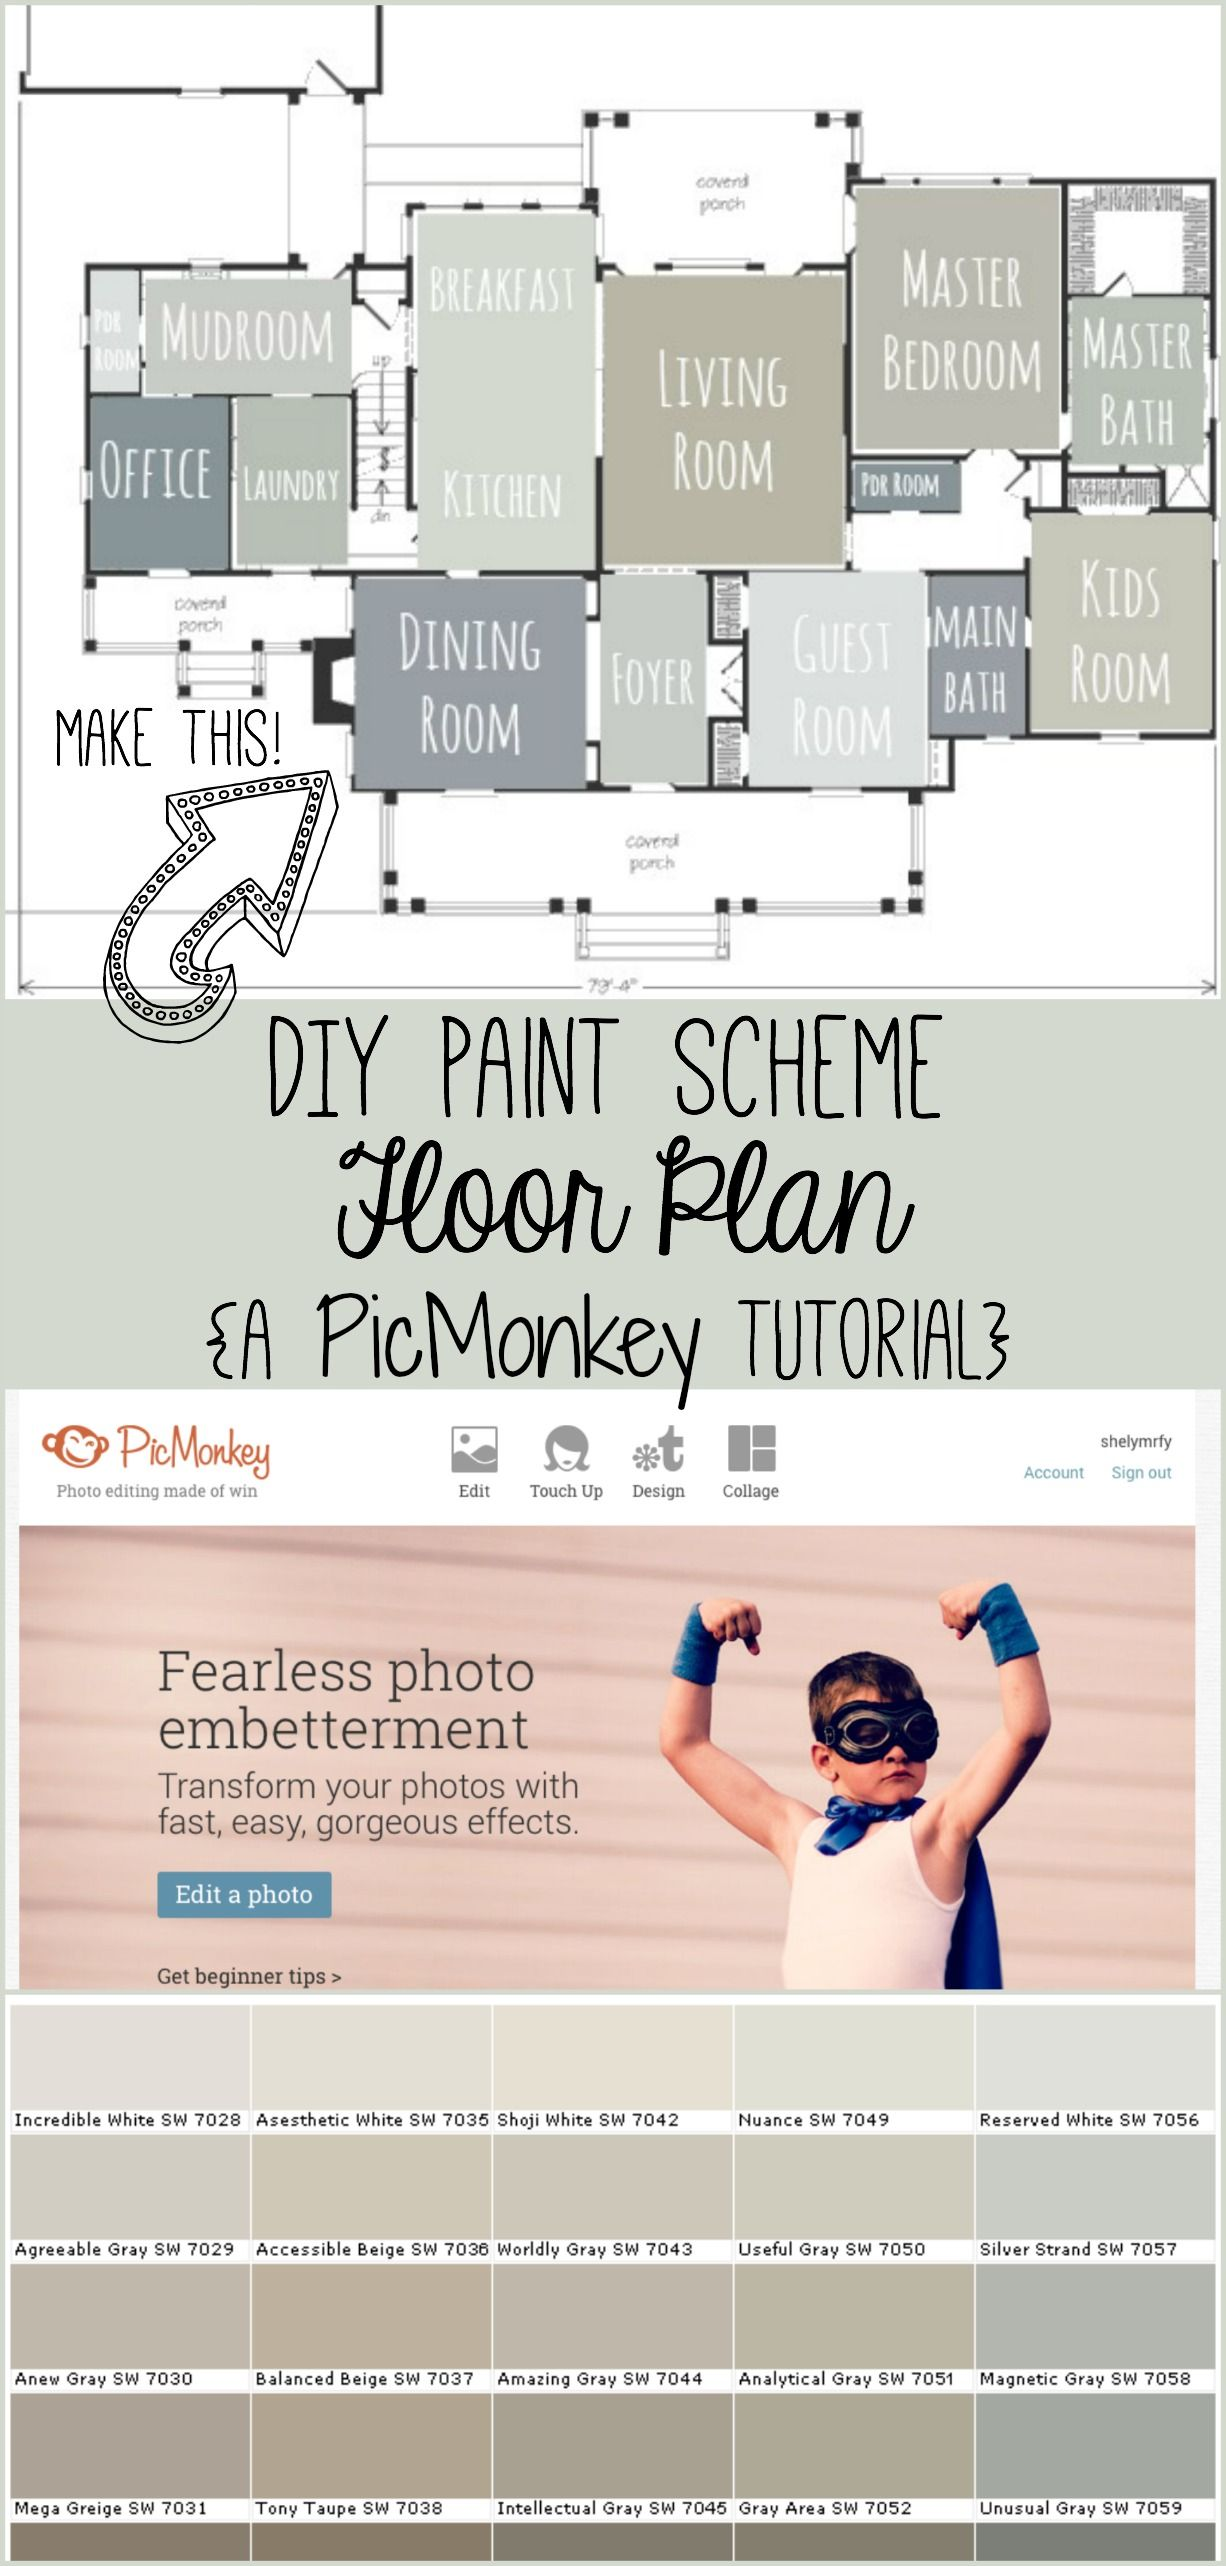 It's easy to create a floor plan layout of paint colors